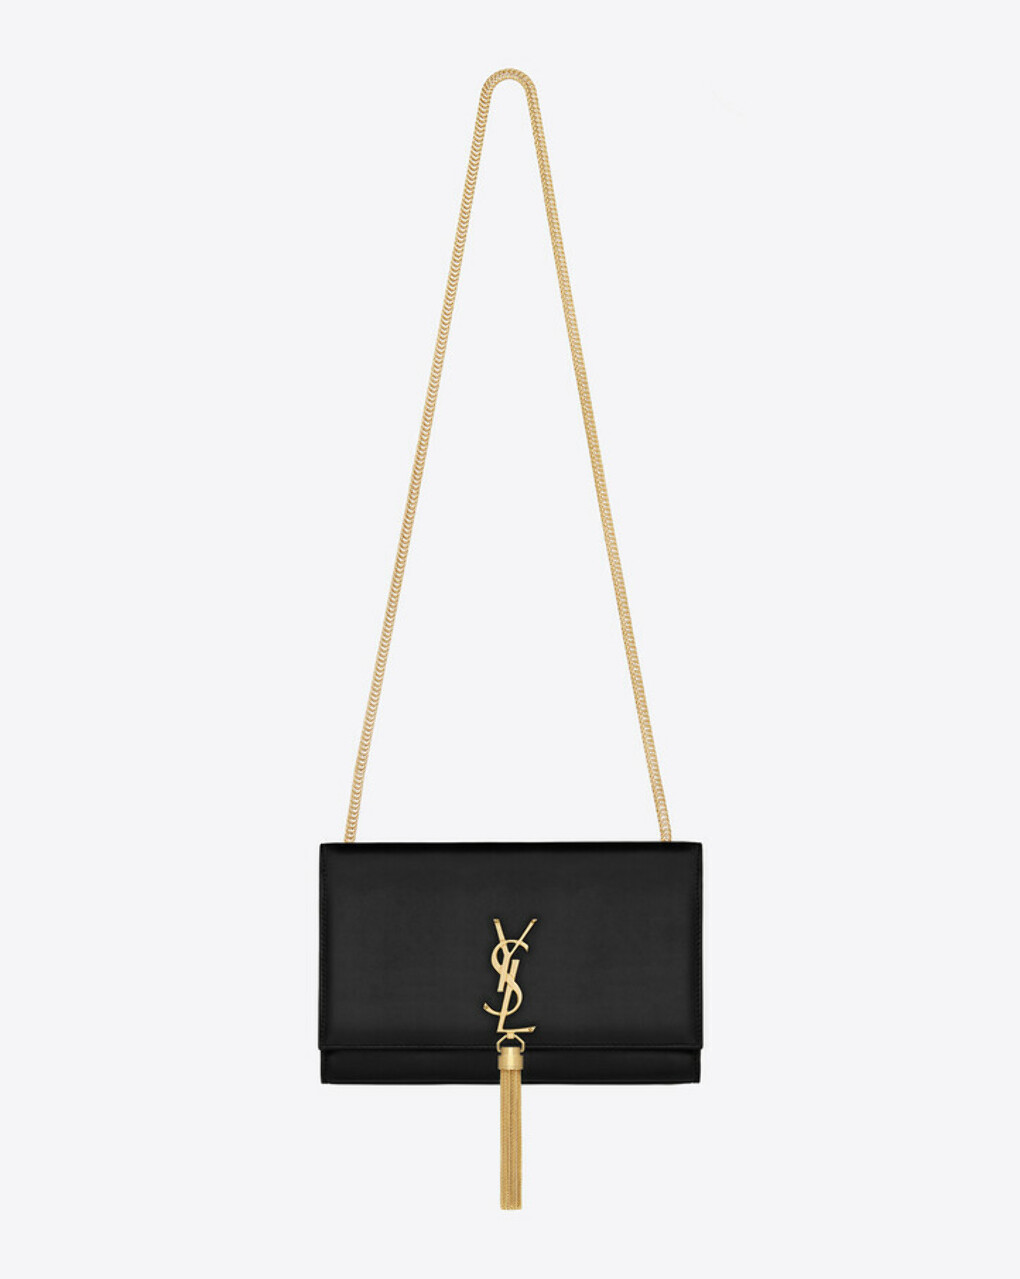 Saint Laurent Satchel Medium à Pompon Monogramme Saint Laurent En Cuir Noir - ysl.com